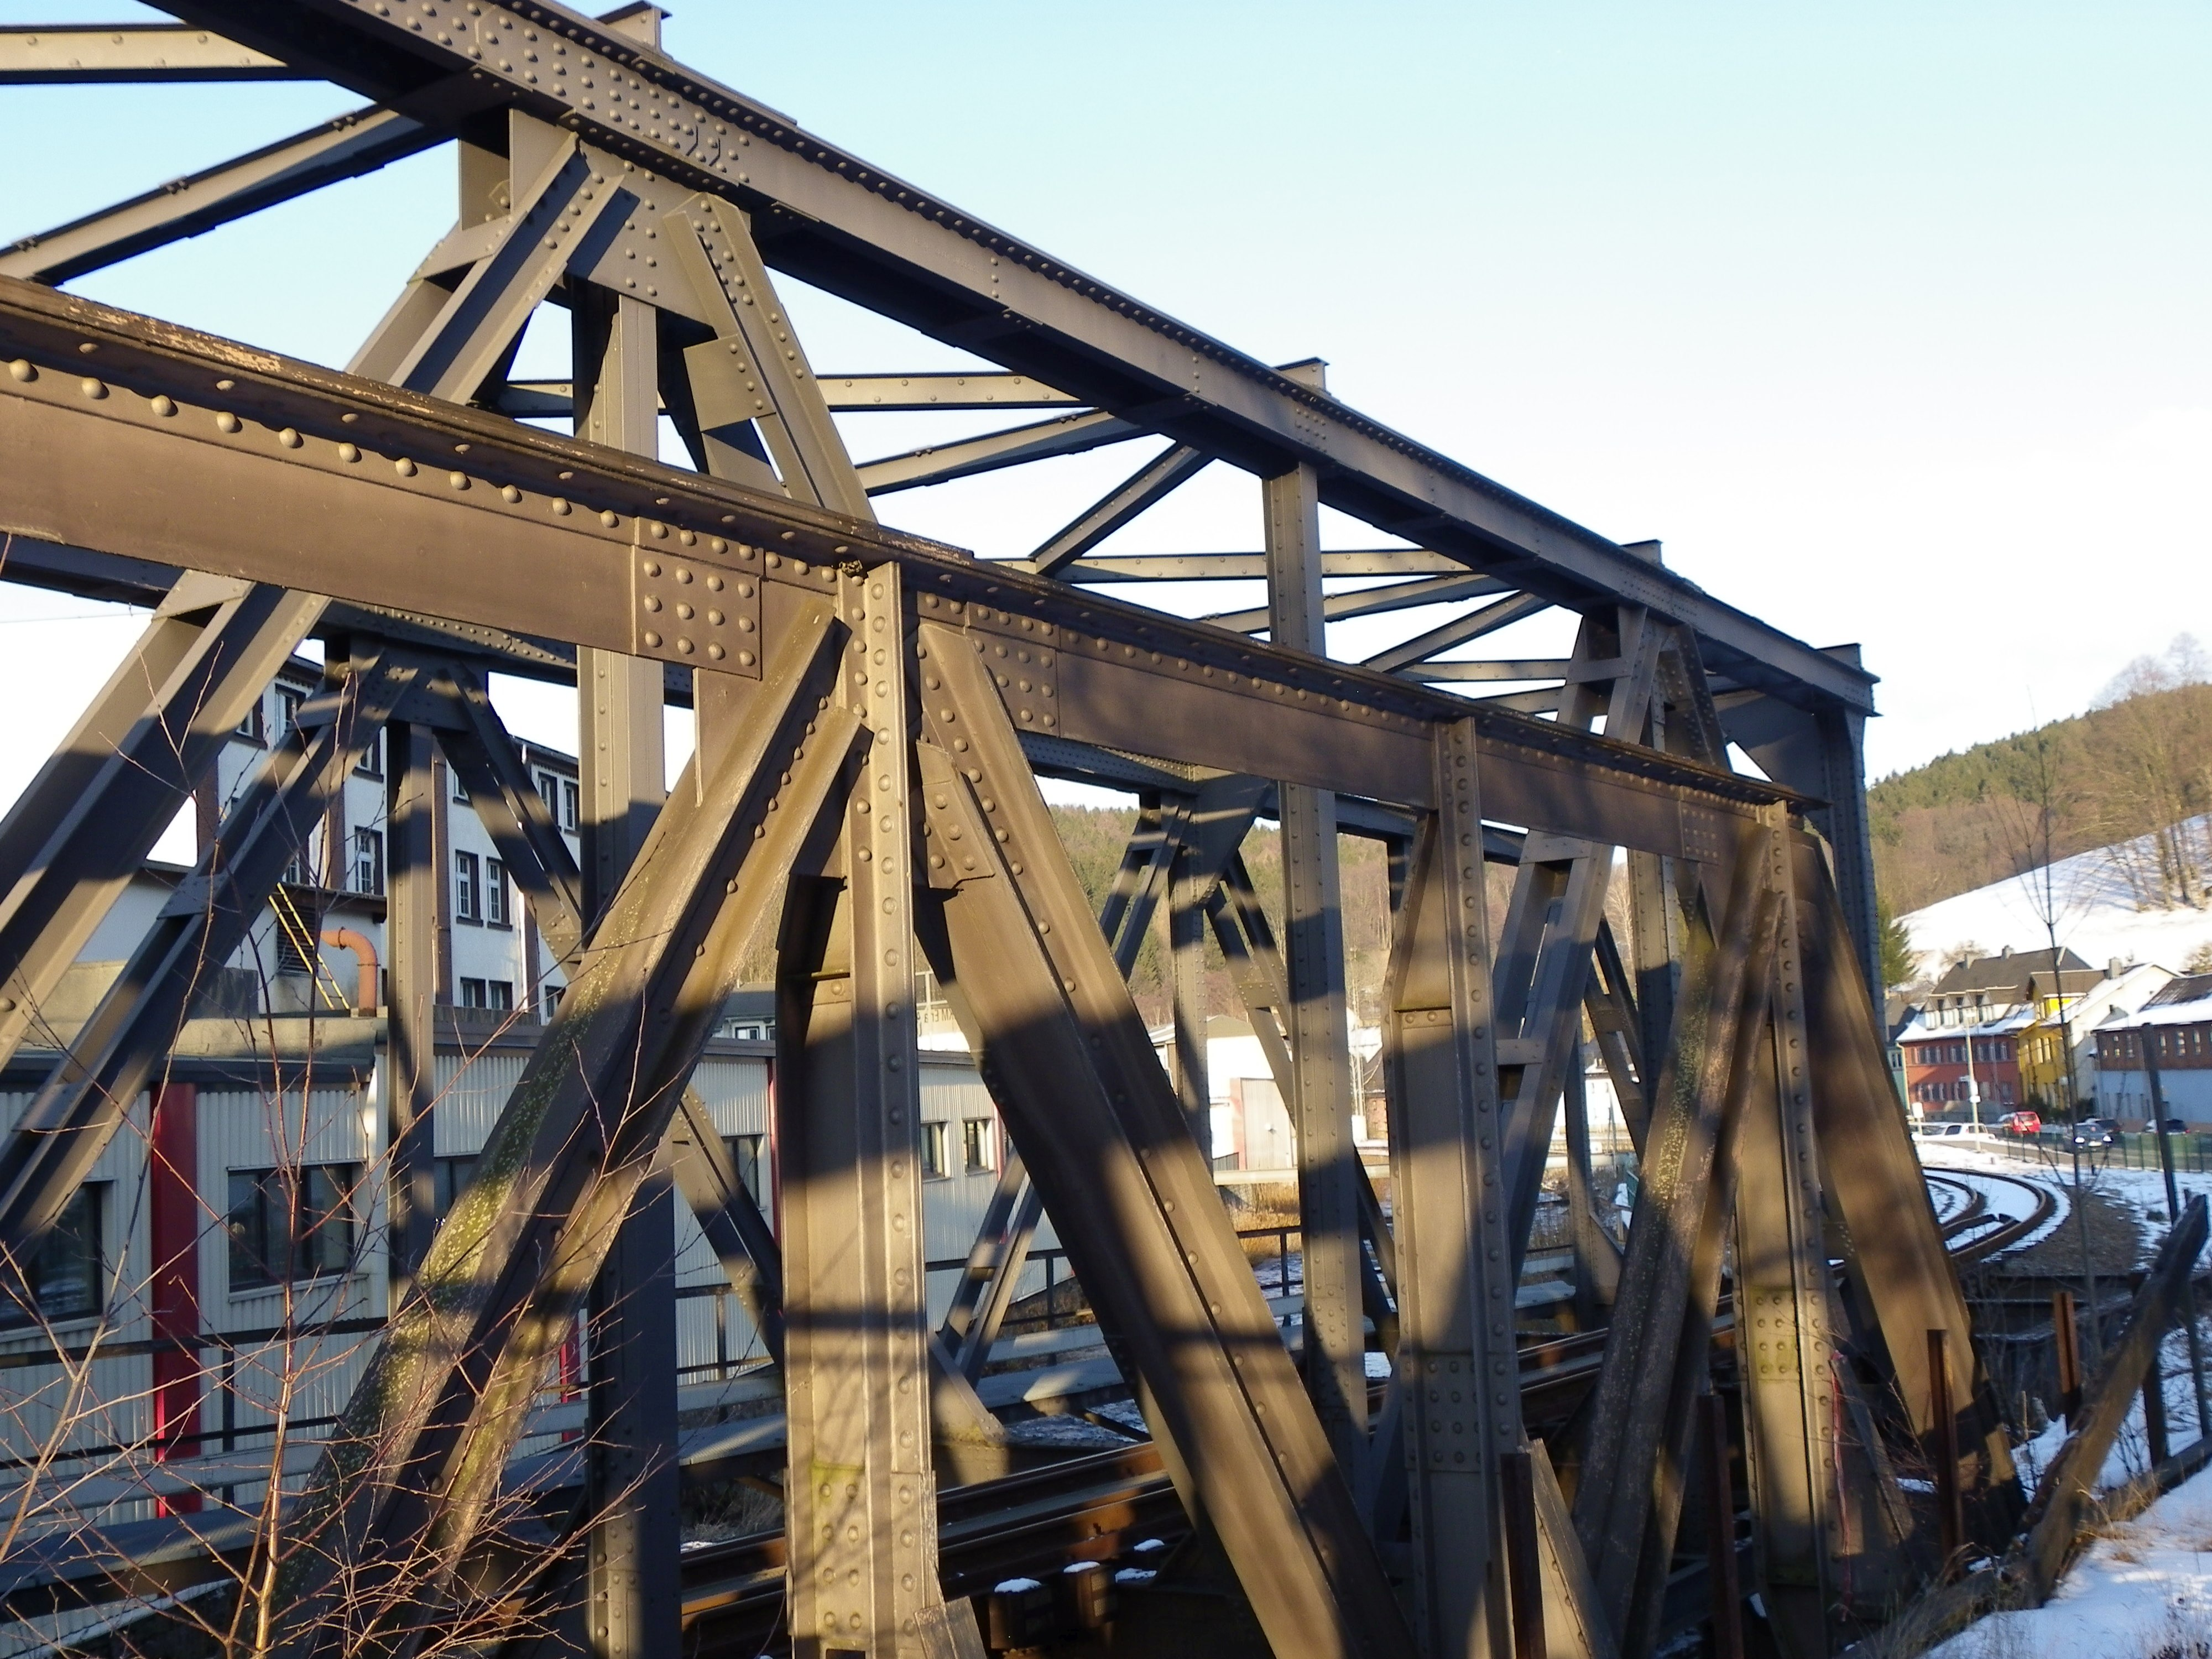 Erzgebirge The Bridgehunters Chronicles Warren Truss Bridge Diagram First Was Probably A What Did They Look Like Before 1945 When Were Two Bridges Built And In Case Of Pony Who Builder